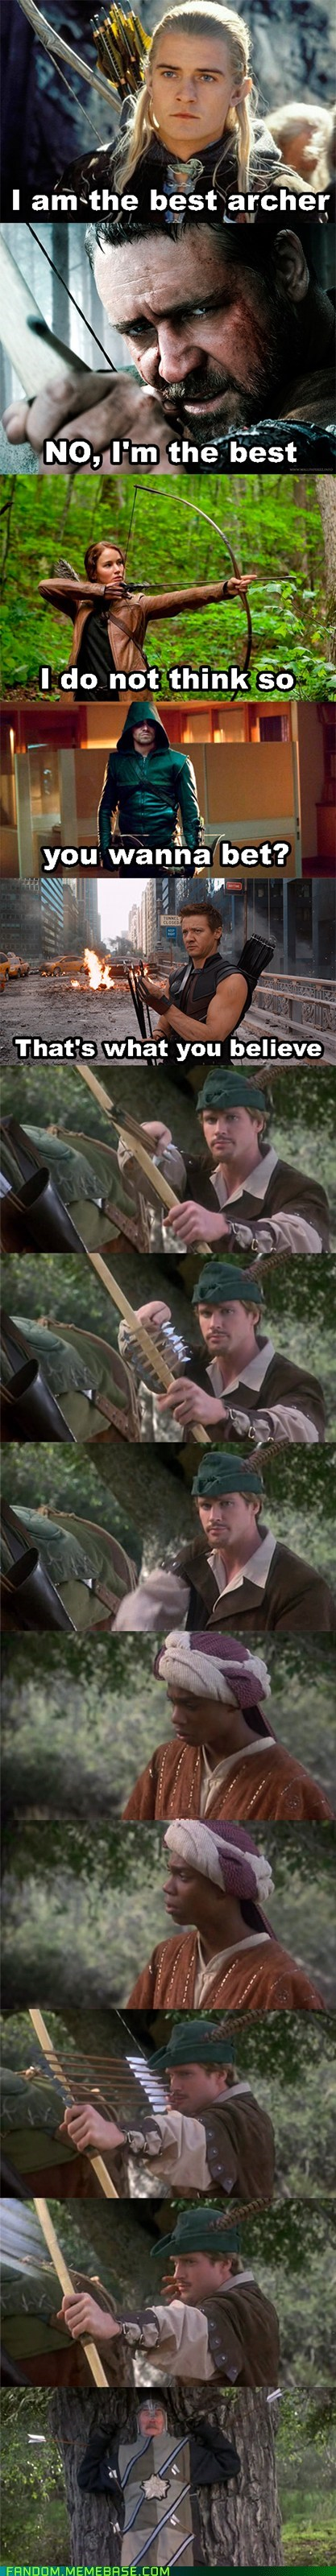 robin hood men in tights,movies,archers